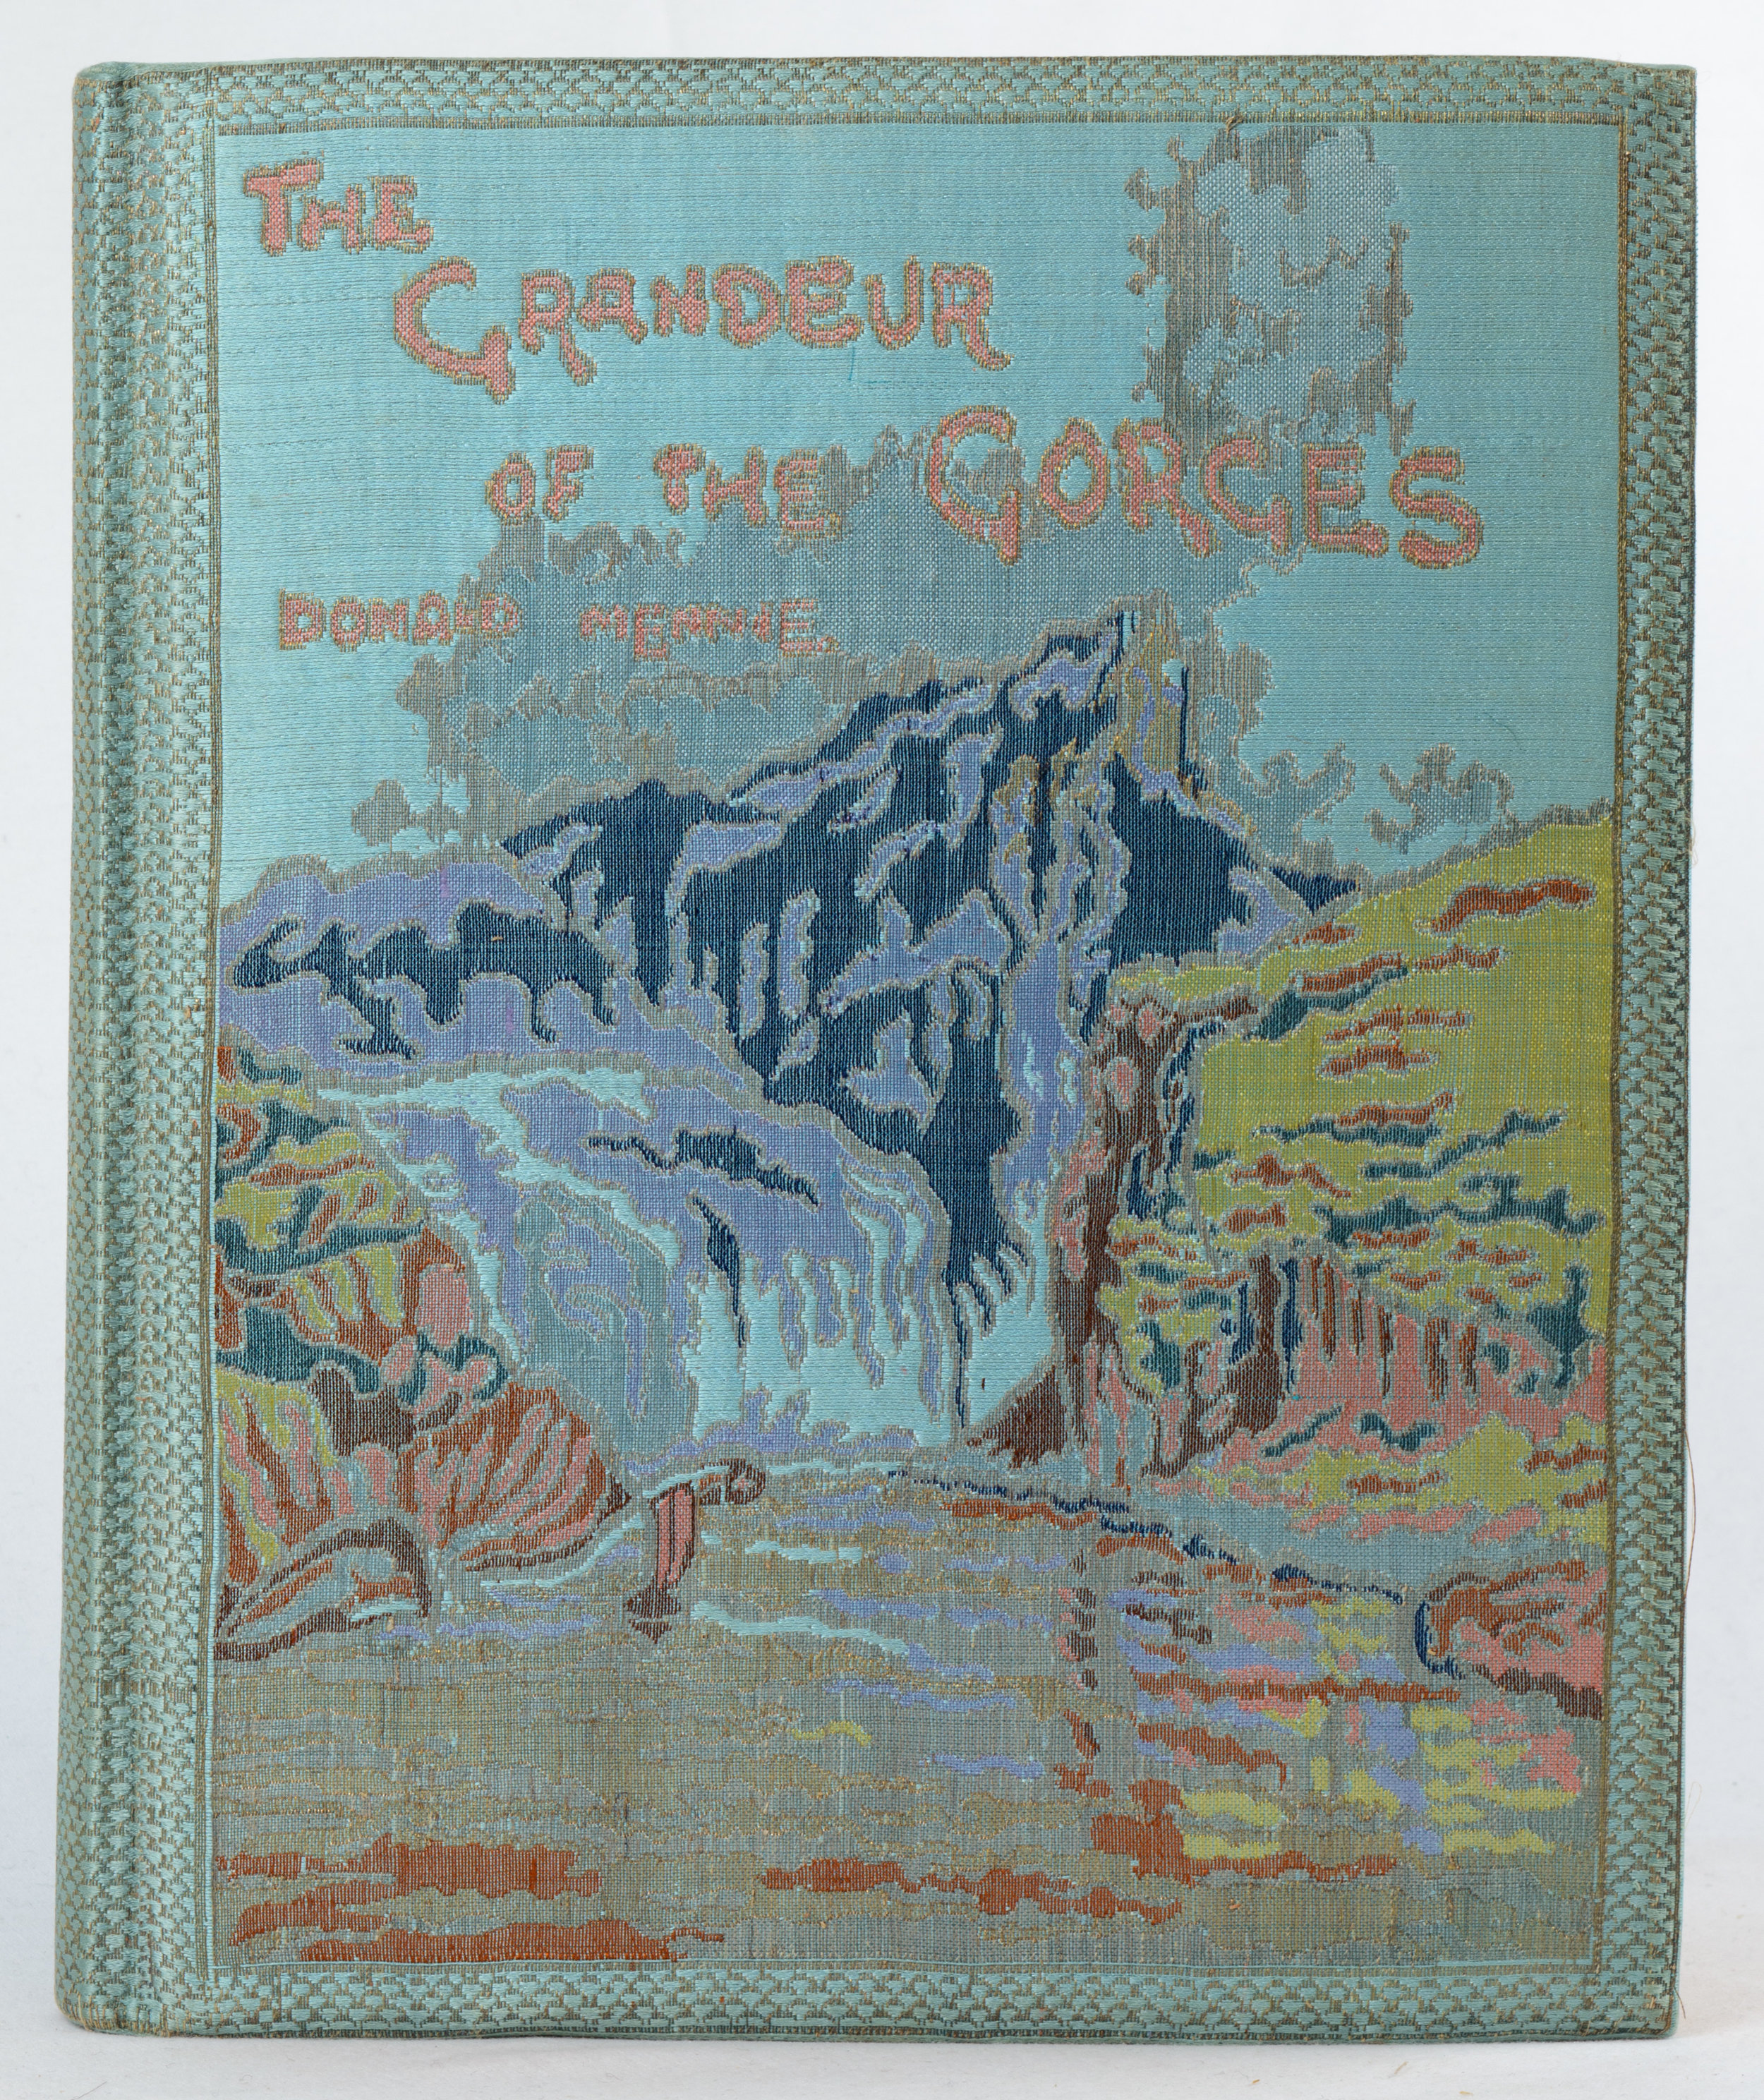 Mennie, Donald. (From Photographs by).   The Grandeur of the Gorges. Fifty Photographic Studies, With Descriptive Notes, of China's Great Waterway, The Yangtze Kiang, Including Twelve Hand-Coloured Prints.